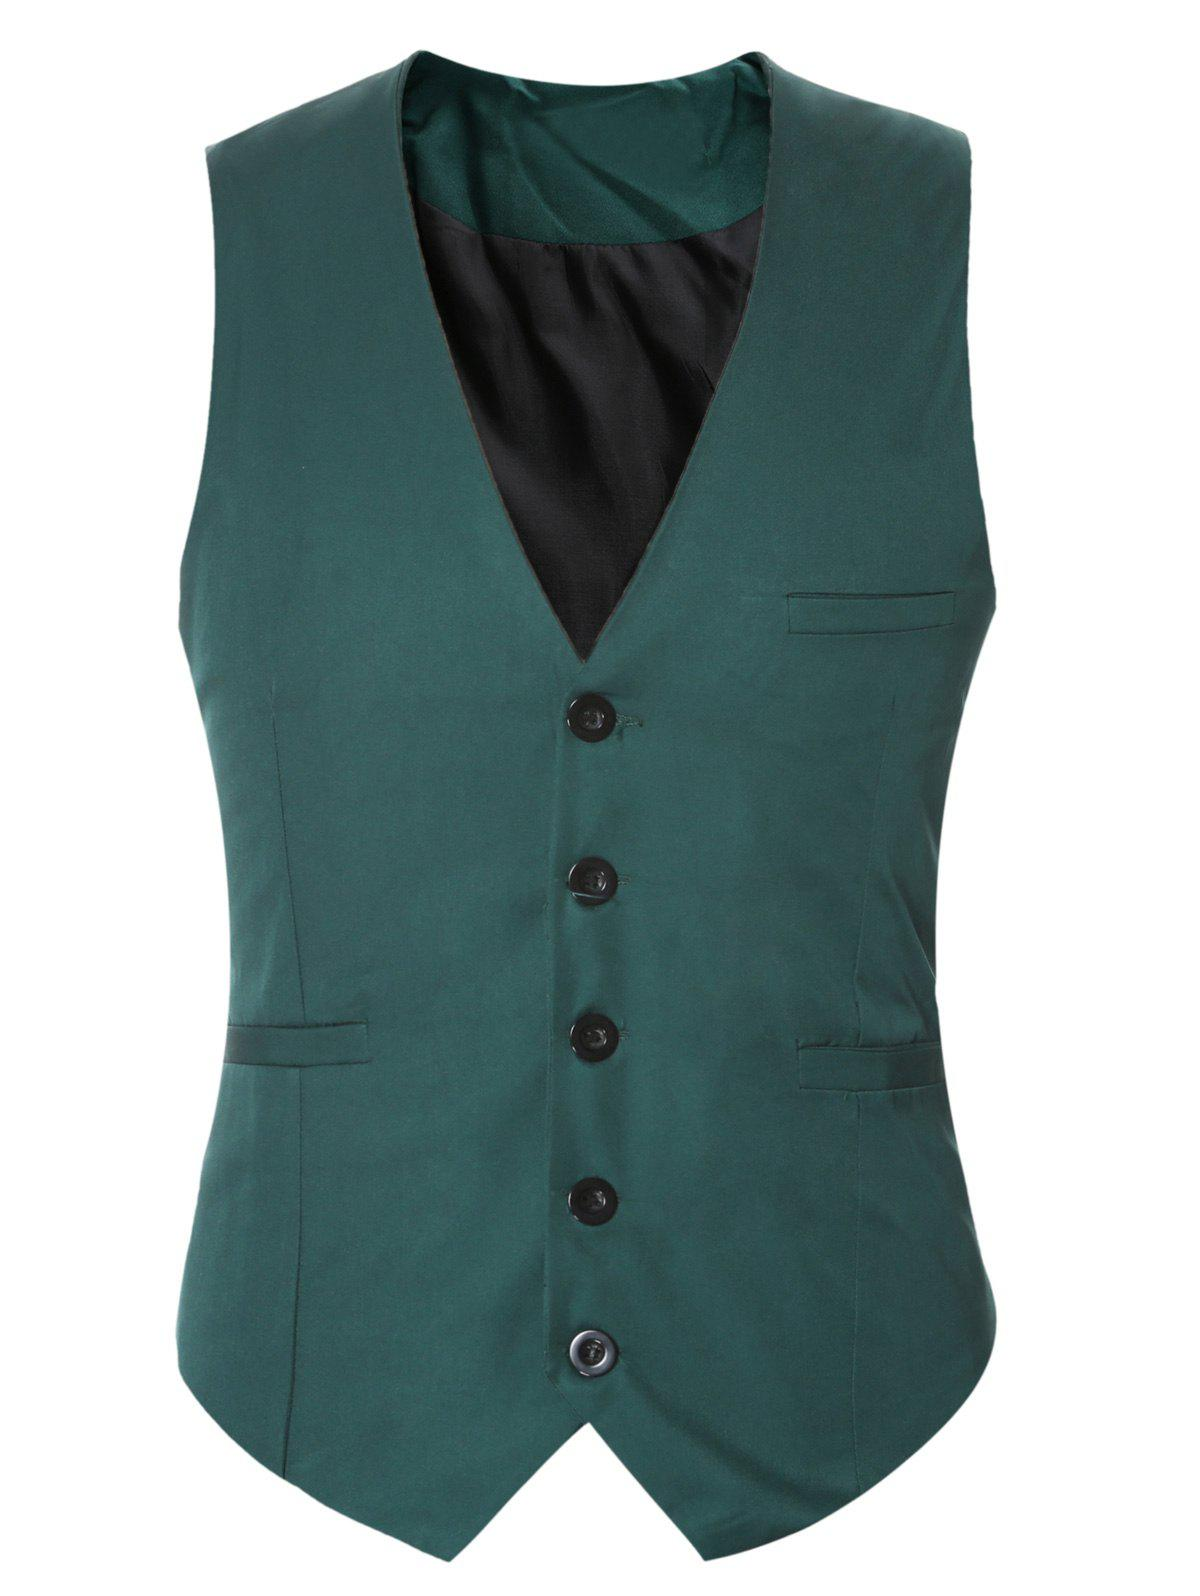 Fashion Buckle Back Solid Color Single Breasted Vest For Men